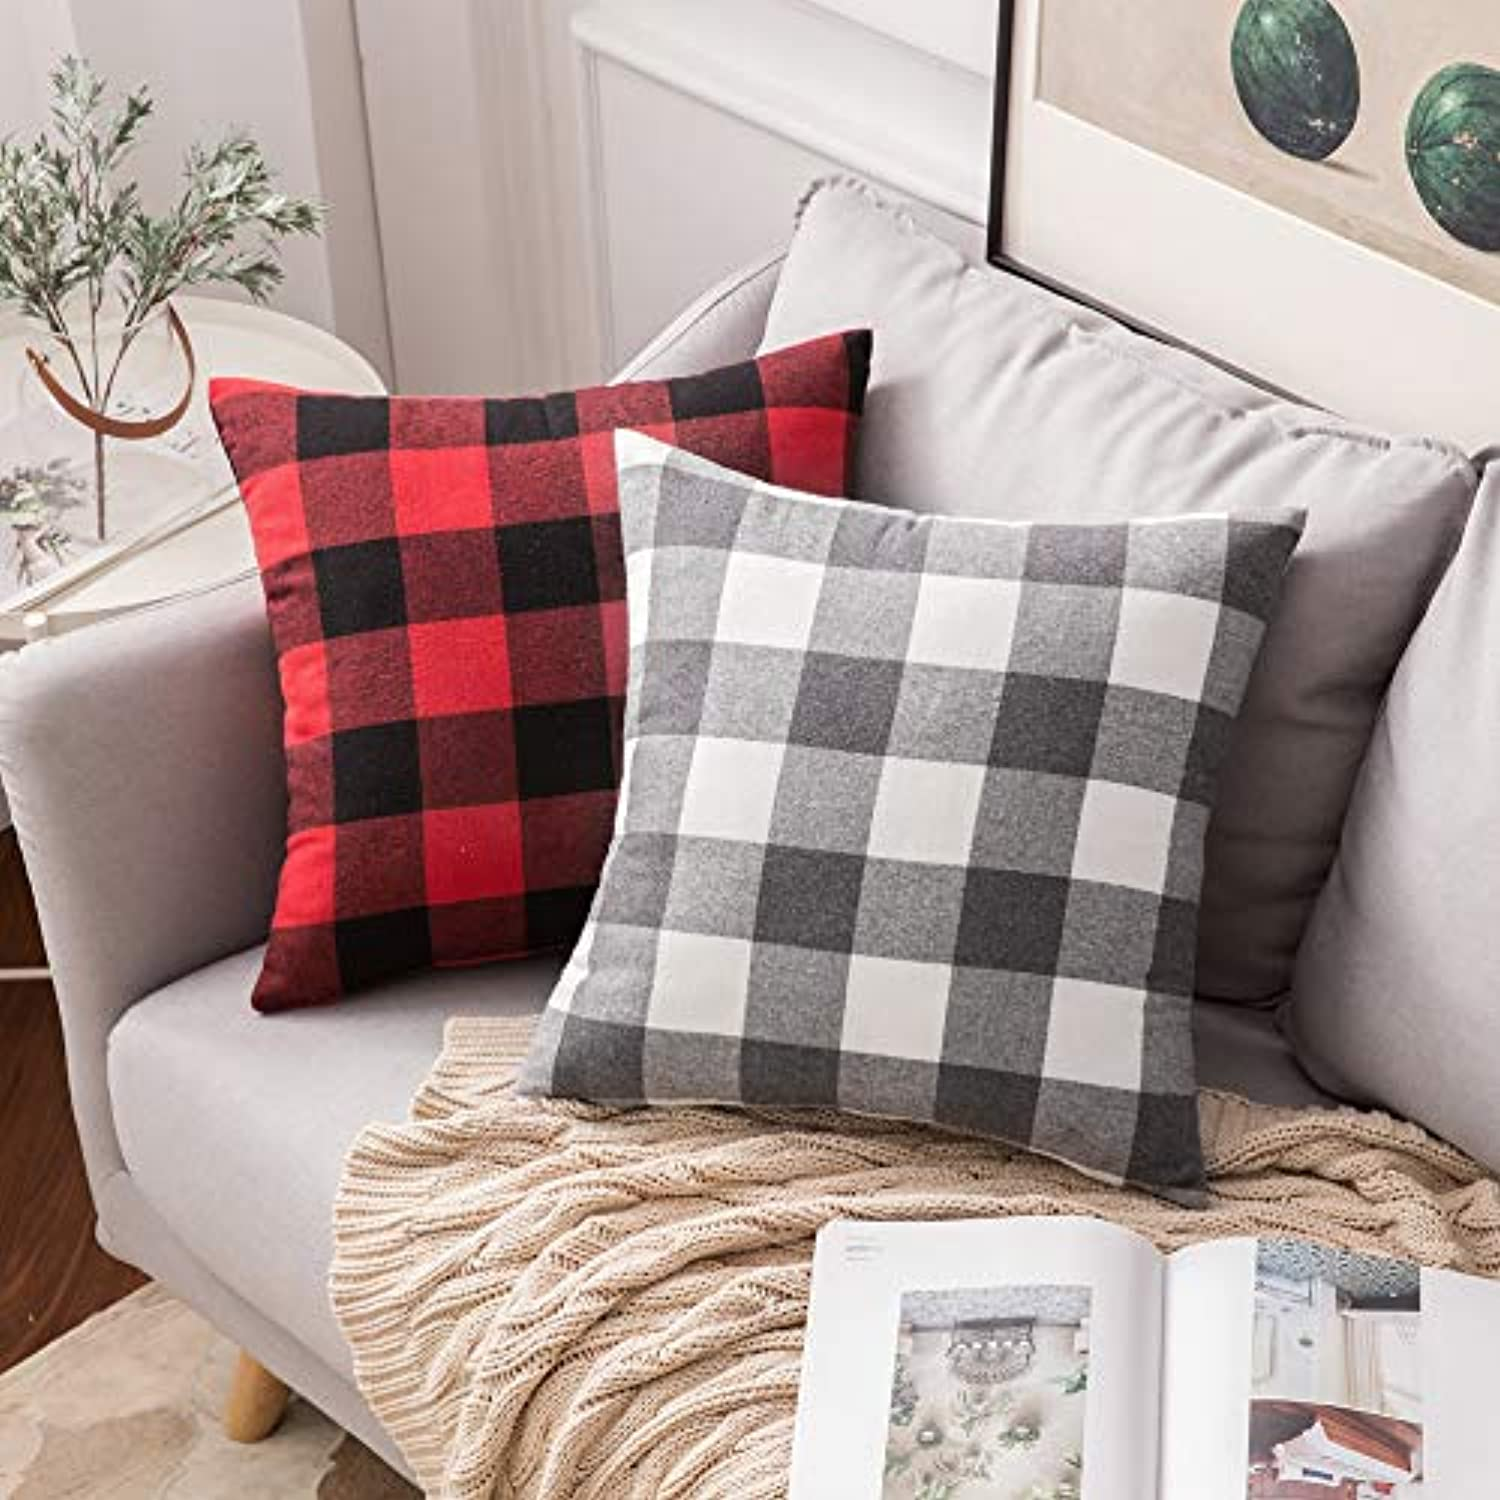 Classier: Buy MIULEE MIULEE Pack of 2 Classic Retro Checkers Plaids Cotton Linen Soft Soild Square Throw Pillow Covers Home Decor Design Cushion Case for Sofa Bedroom Car 20 x 20 Inch 50 x 50 cm